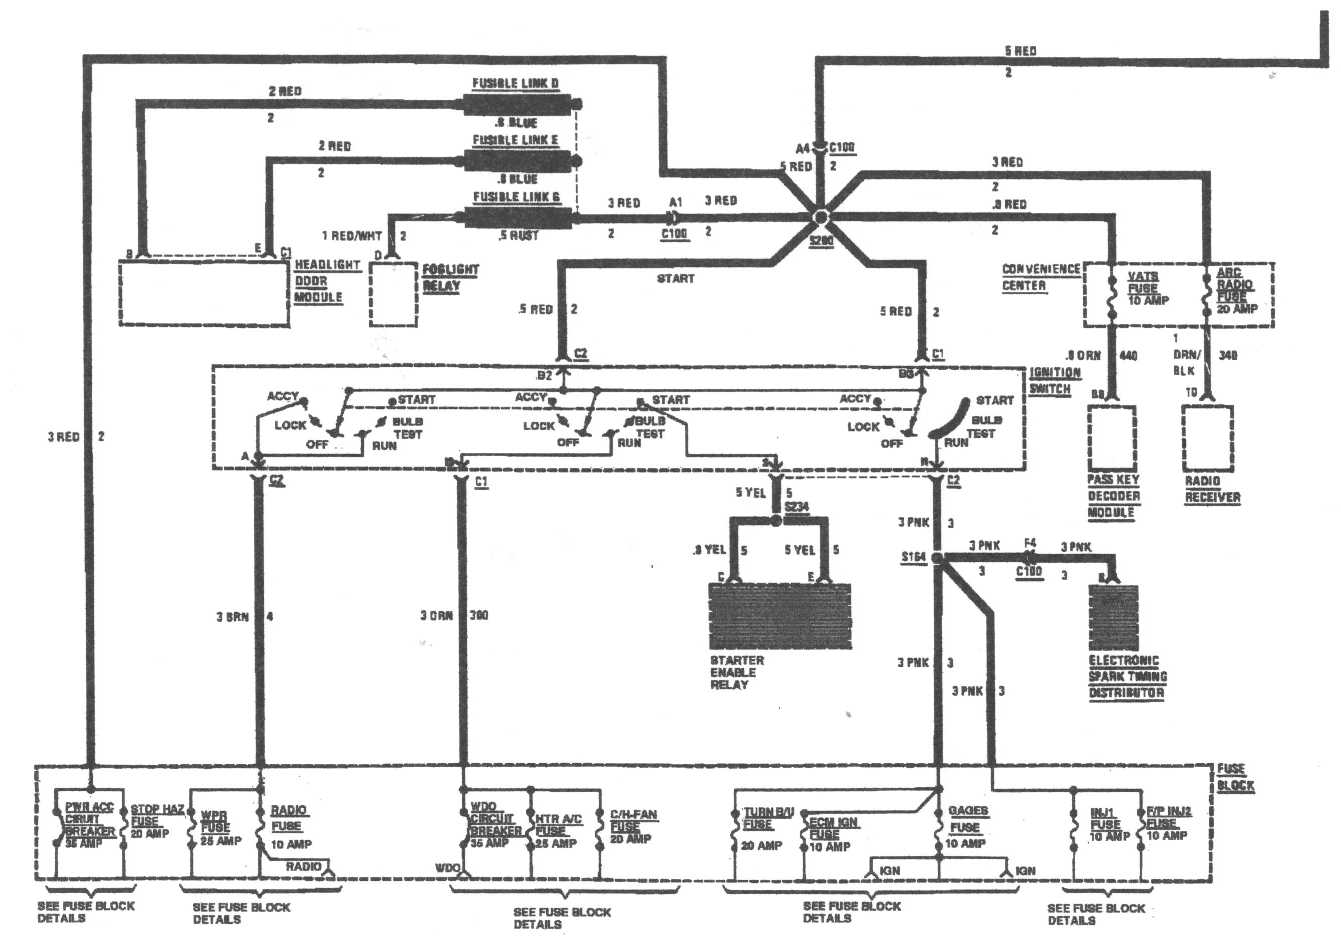 wiring diagram for aftermarket power windows labeled brain amygdala 2001 monte carlo stereo installation autos